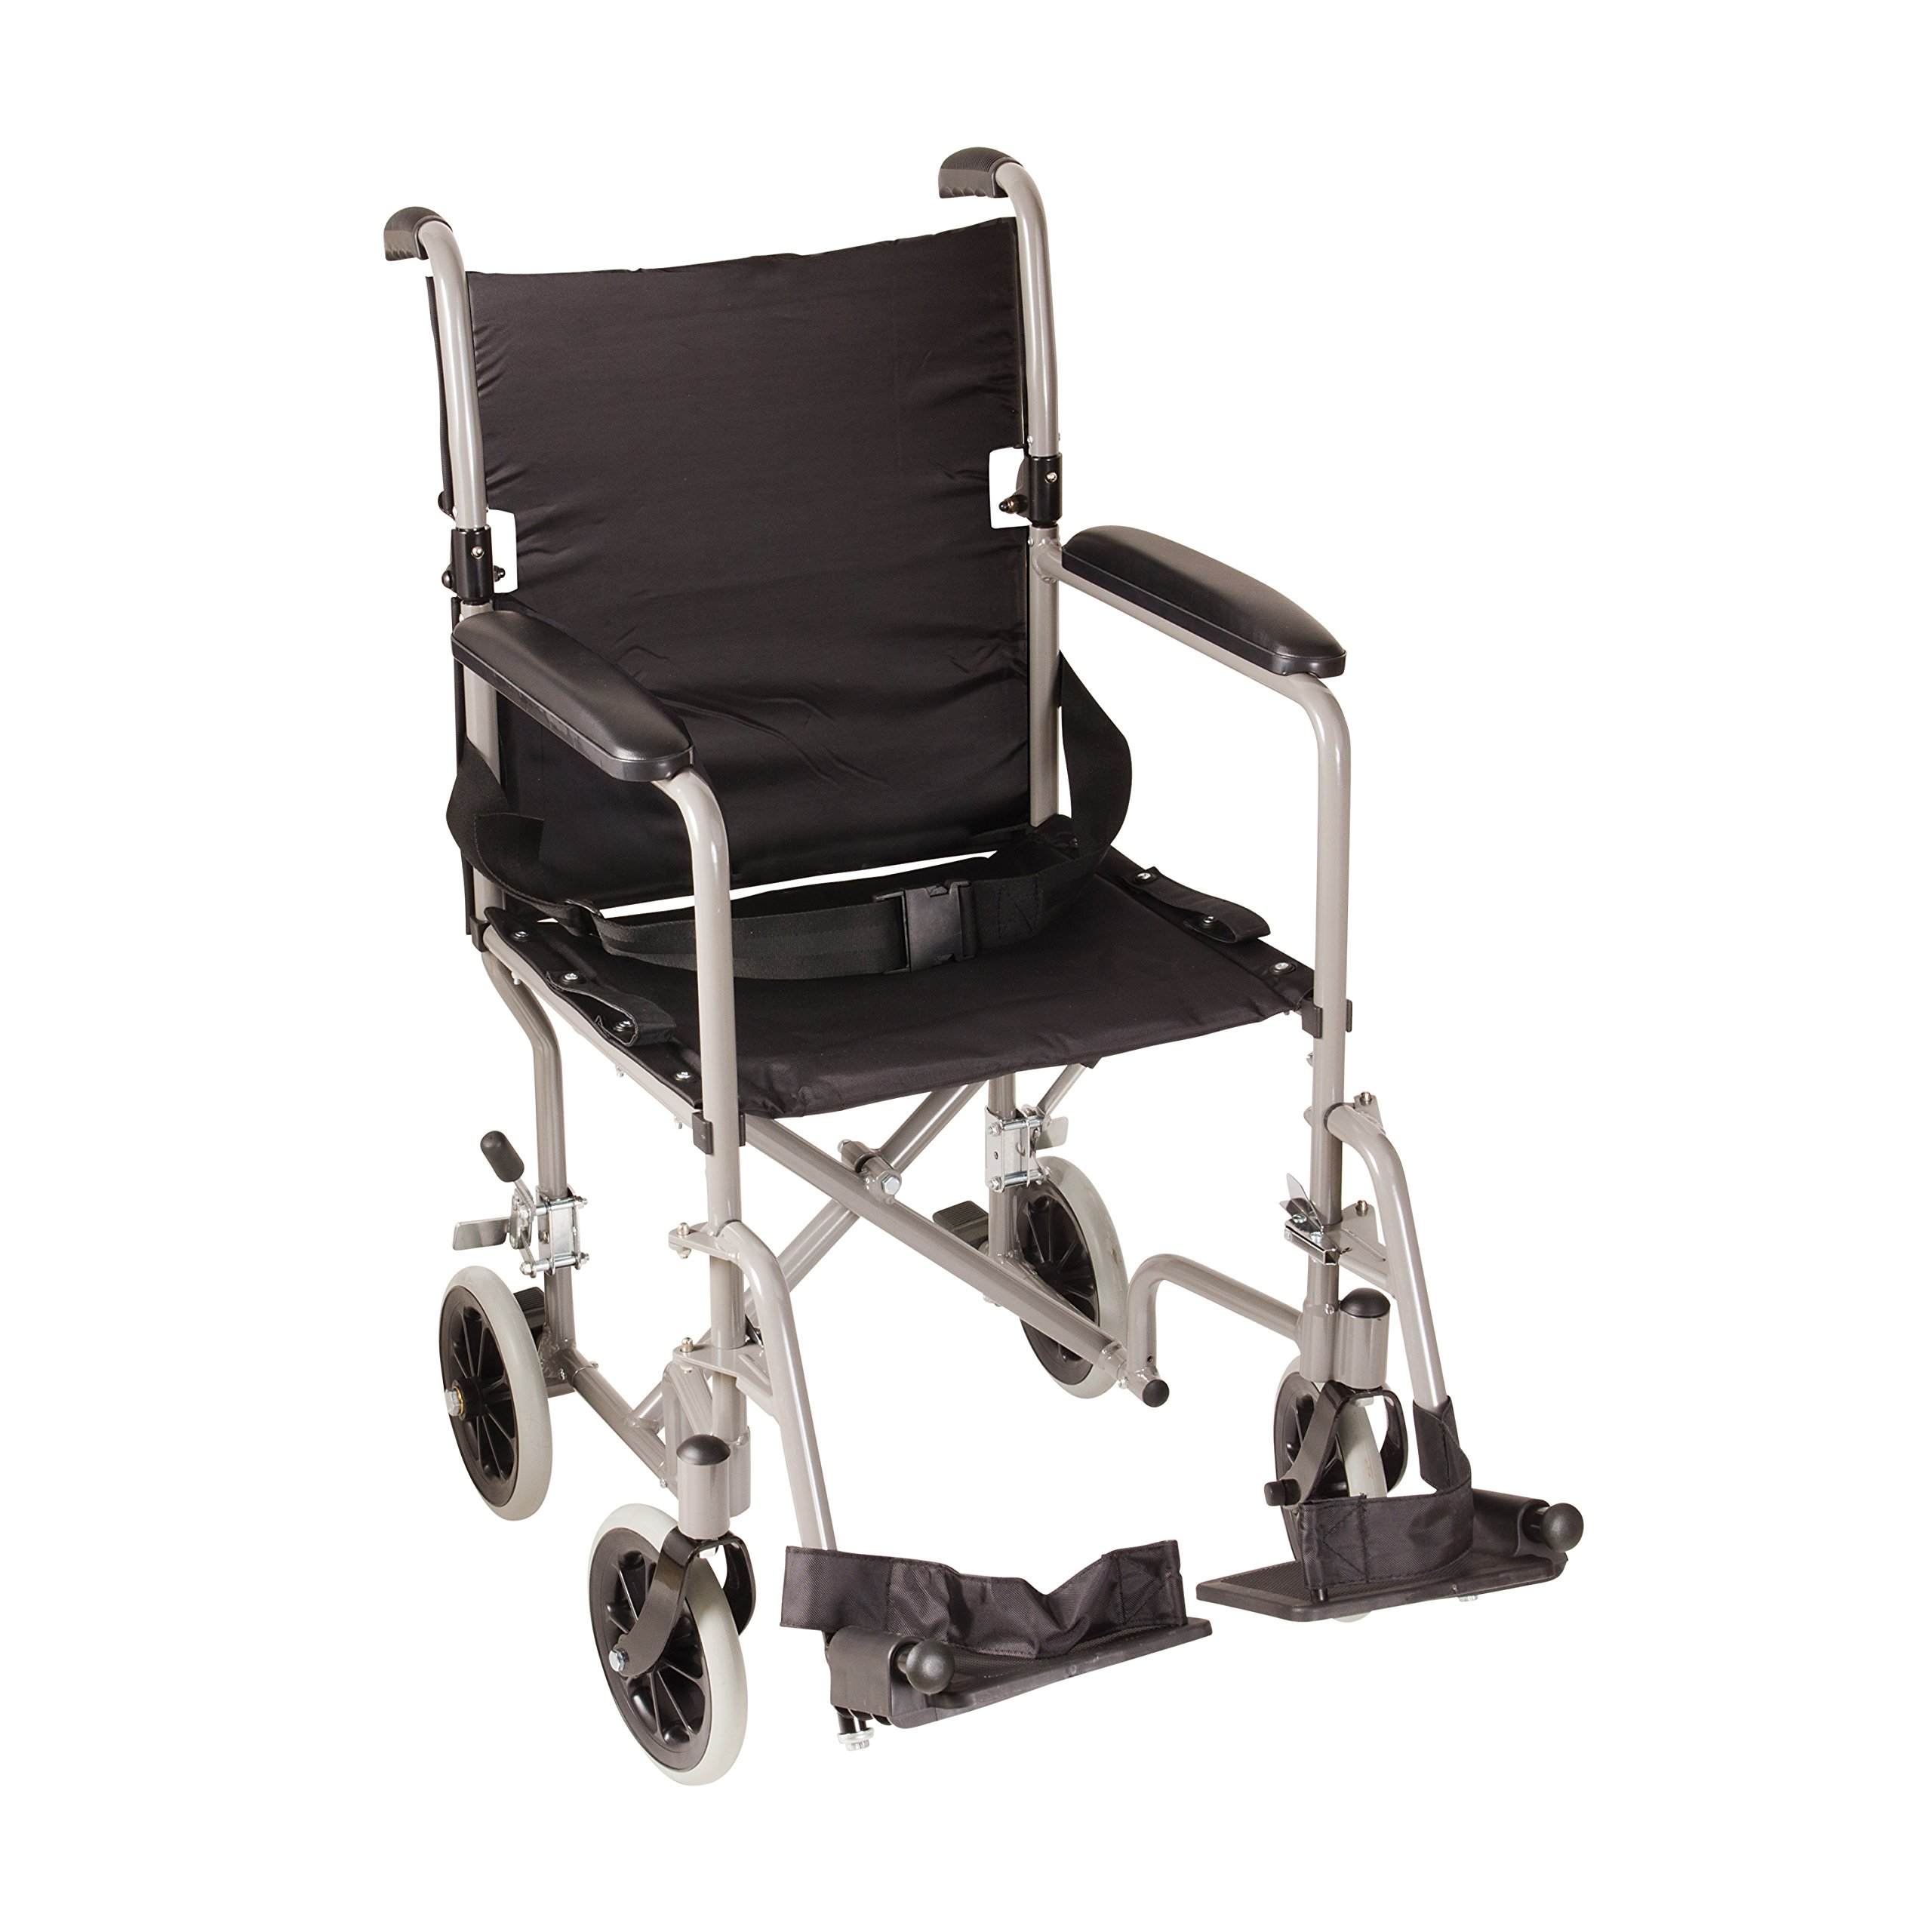 DMI Ultra Lightweight Folding Transport Chair Travel Wheelchair, Titanium